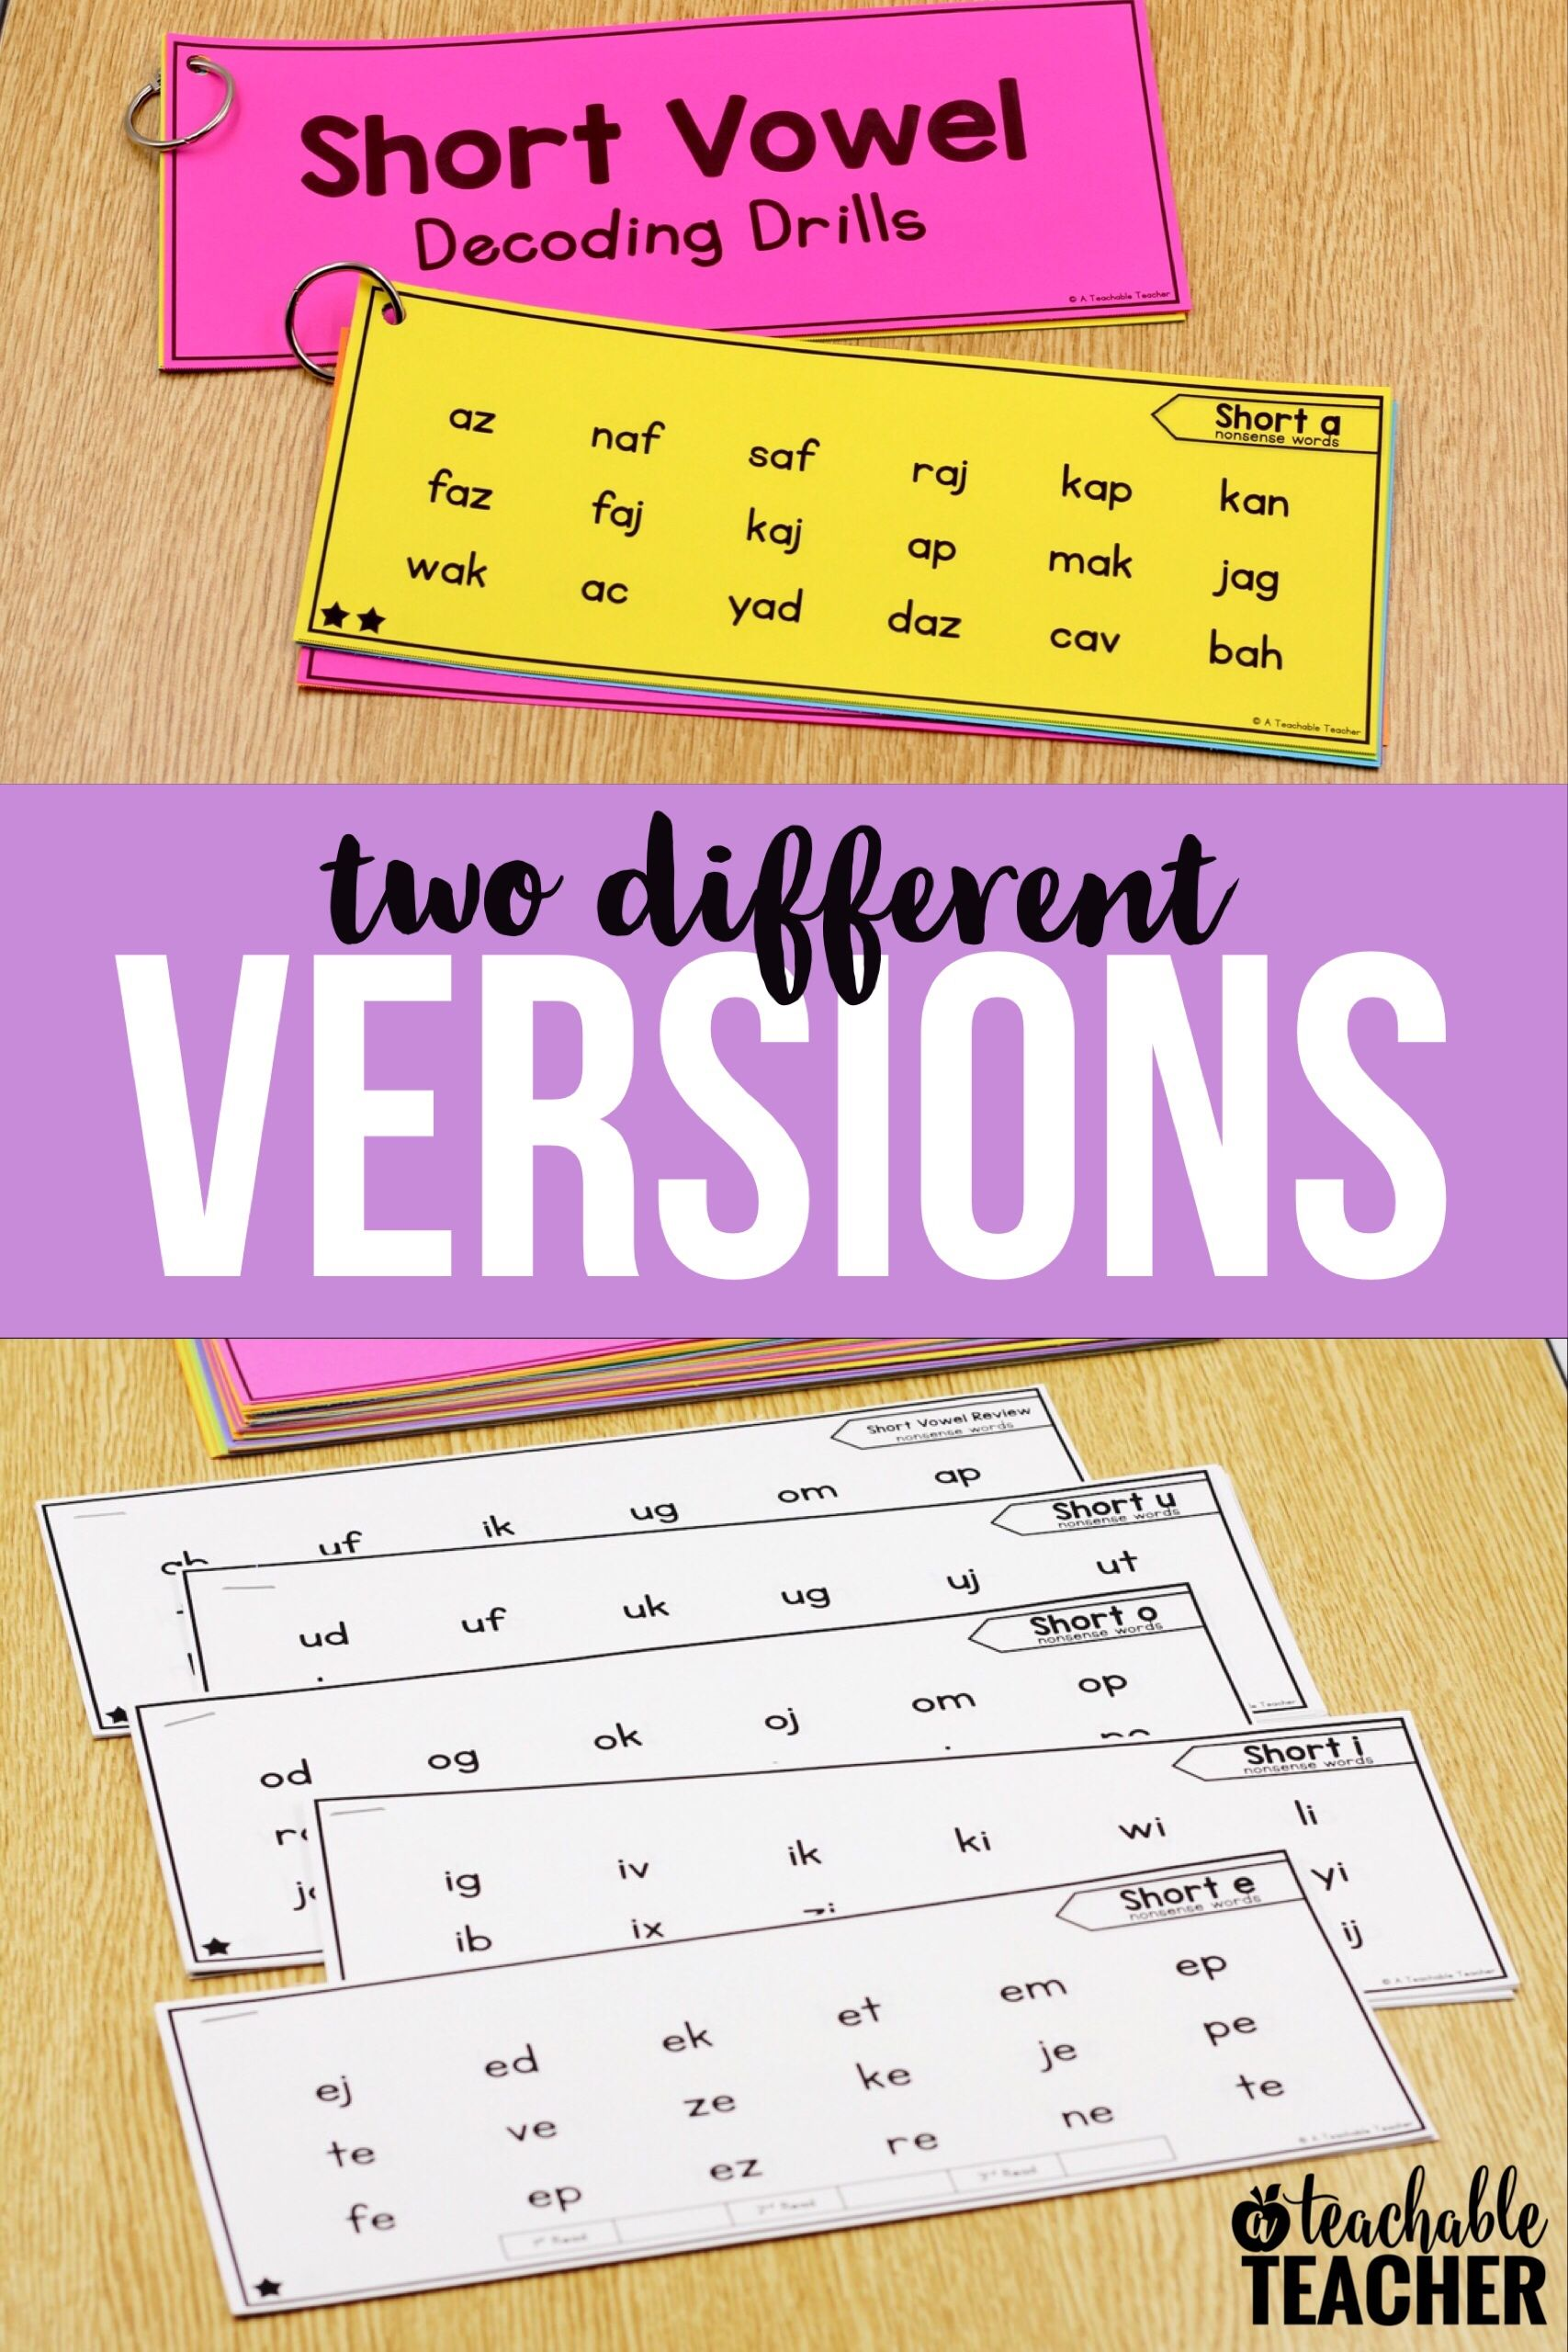 Decoding Drills For Fluency